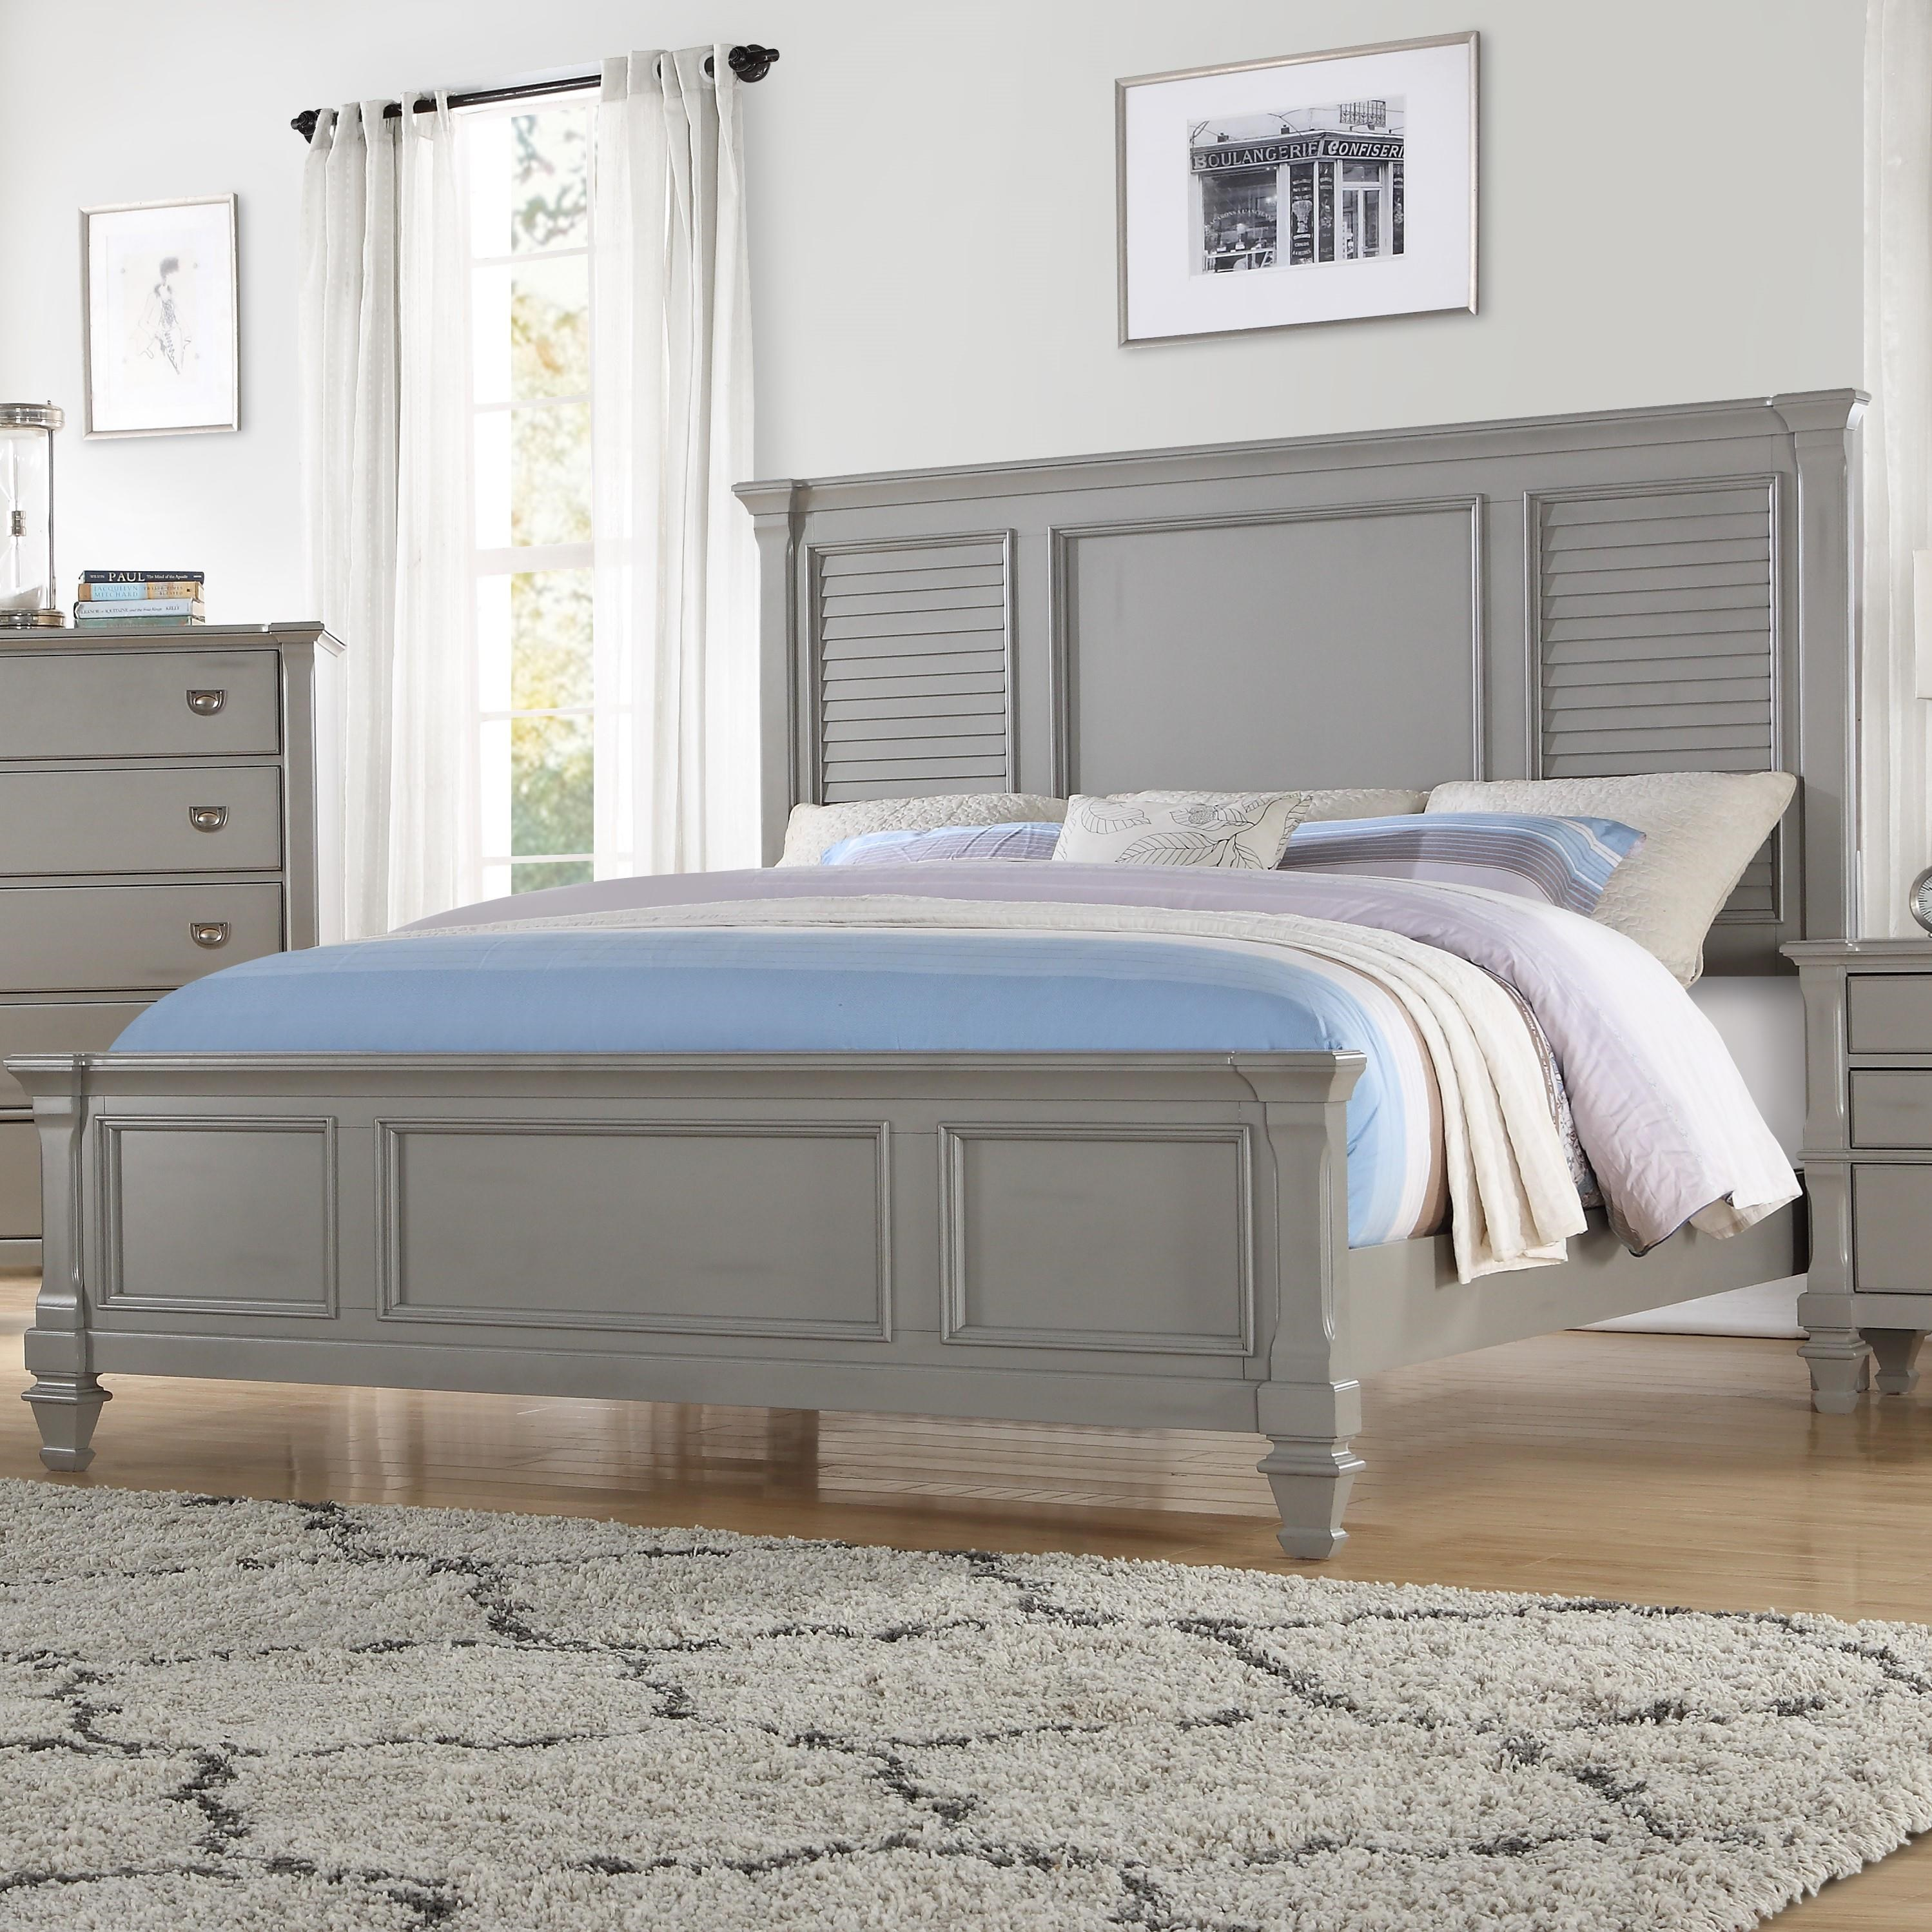 Austin Group Seabrook King Bed Royal Furniture Panel Beds